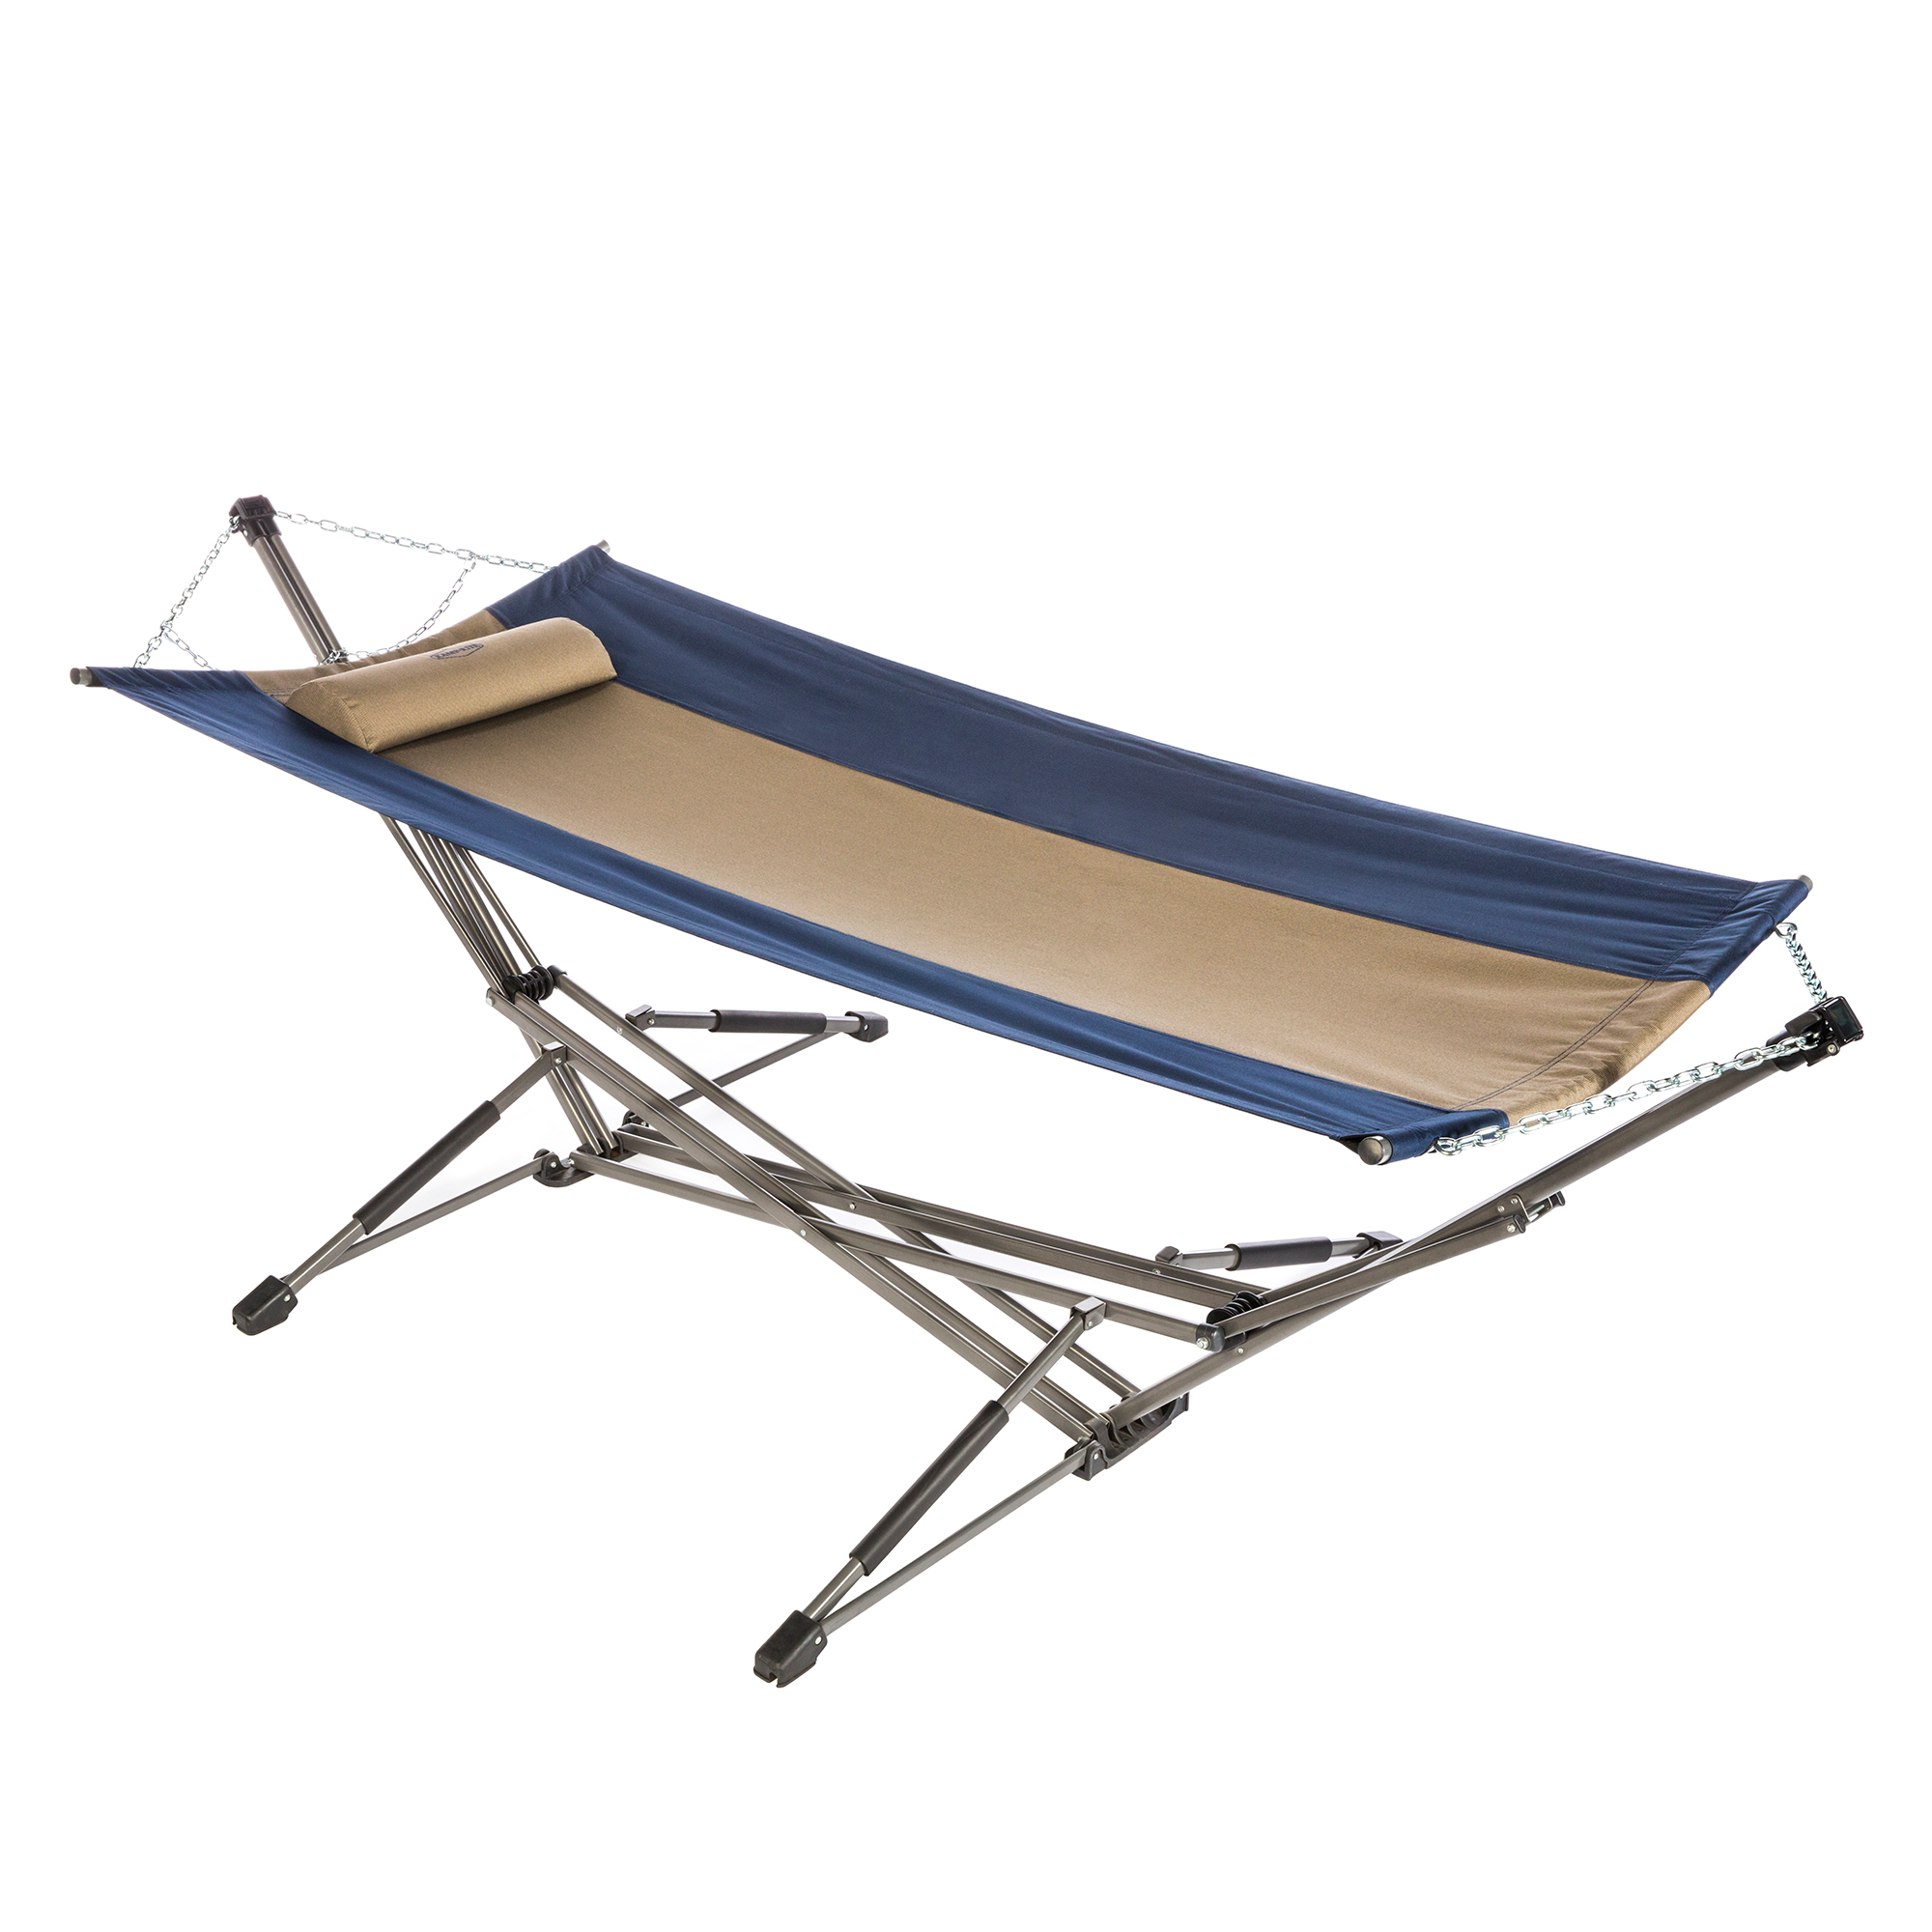 single bliss cfm foldable stand master hayneedle hammock portable stow ez with blisshammocksstowezportablehammockandstand hammocks steel product